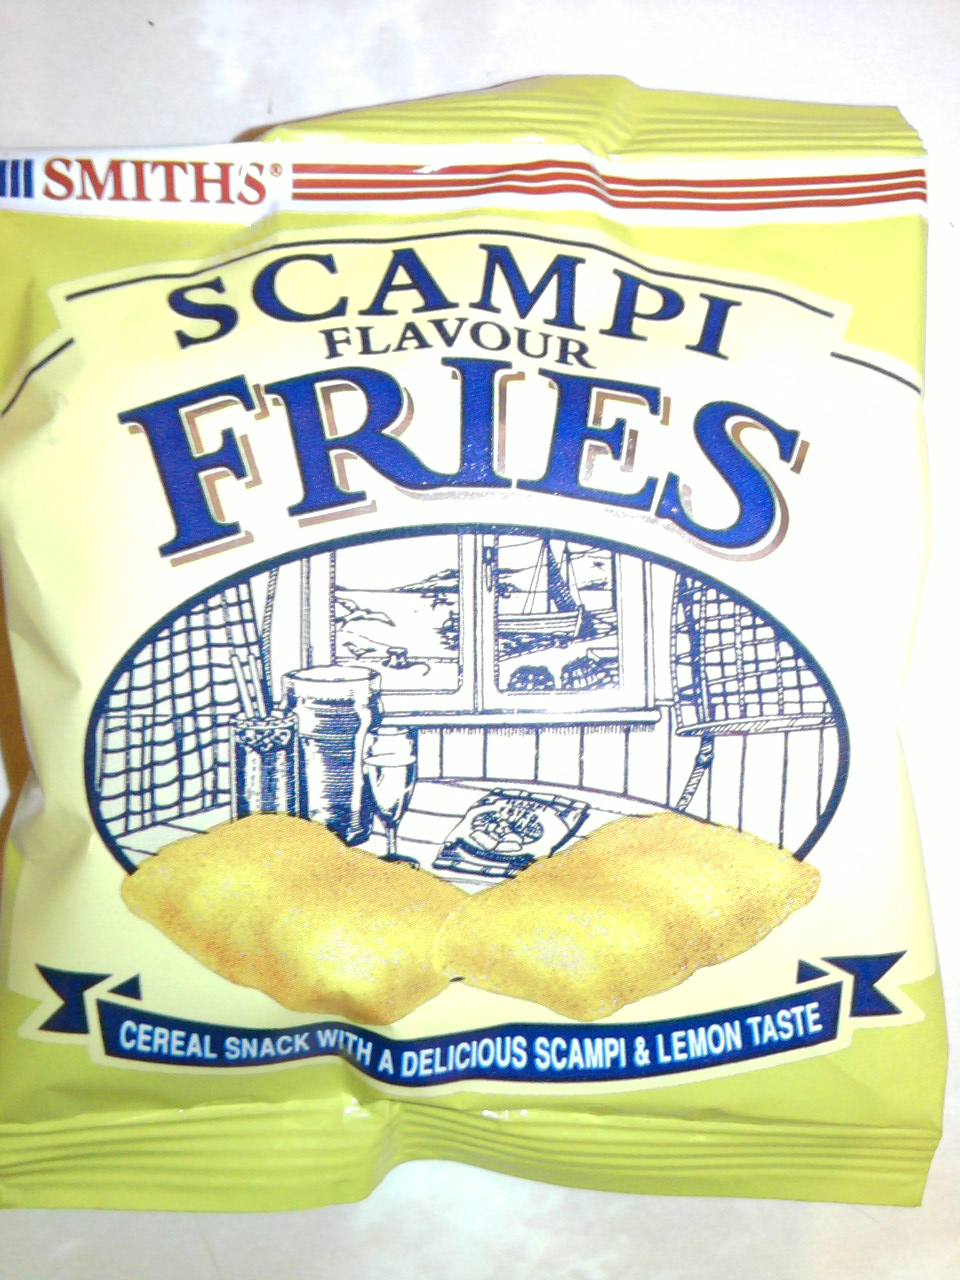 Smiths Scampi Flavour Fries front of bag